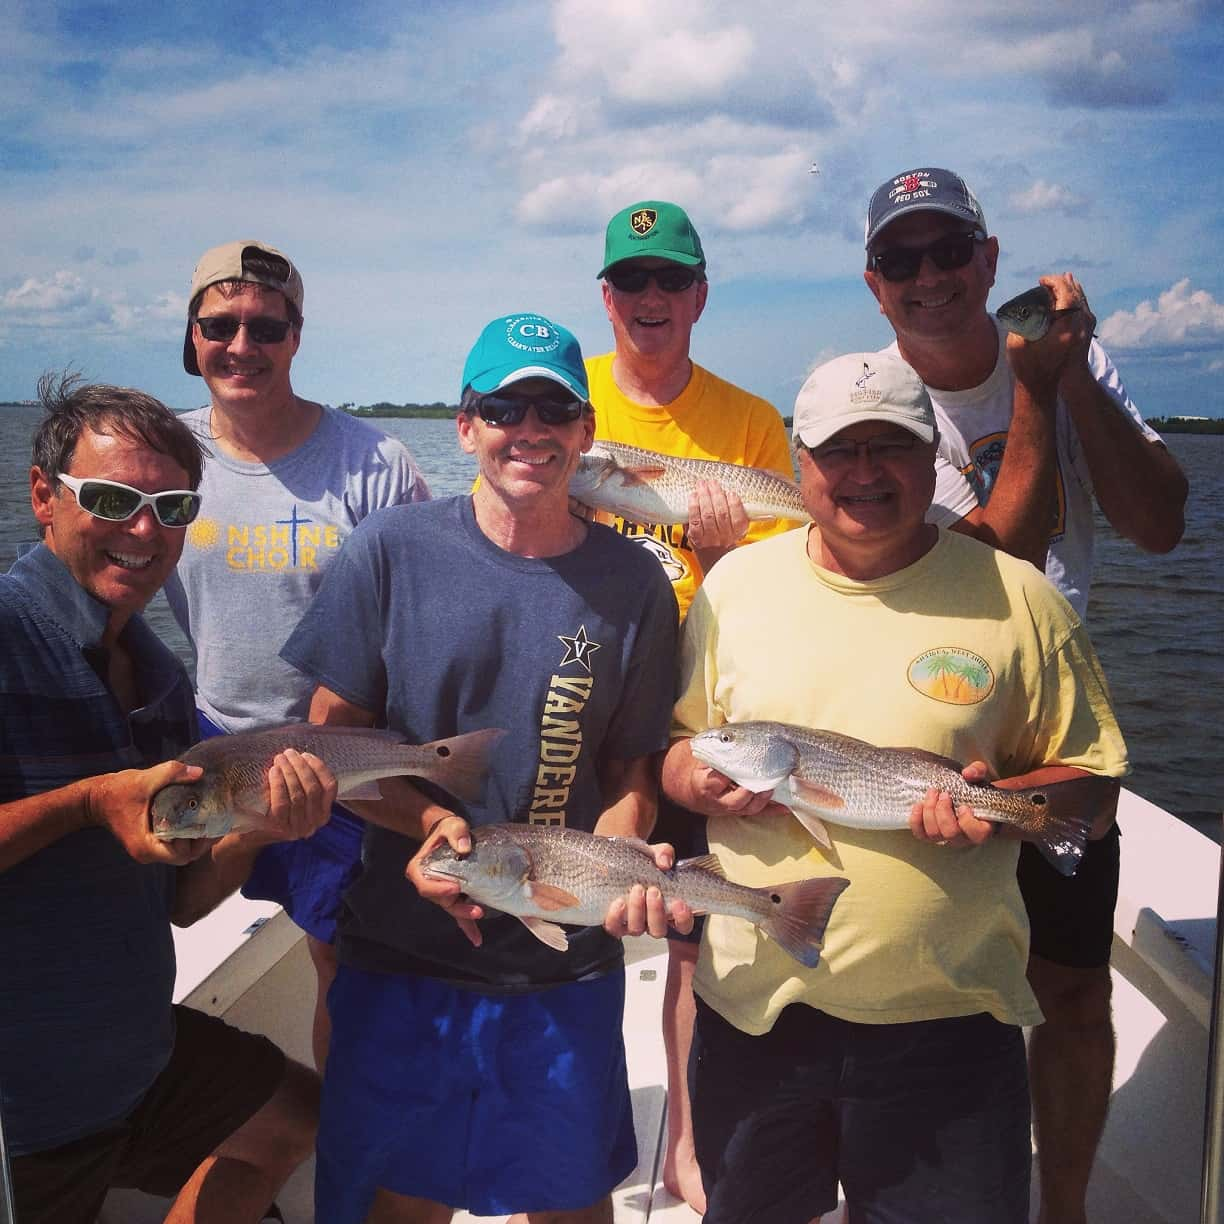 Guys fishing trip in tampa bay goes well with shallow for Fish and trip